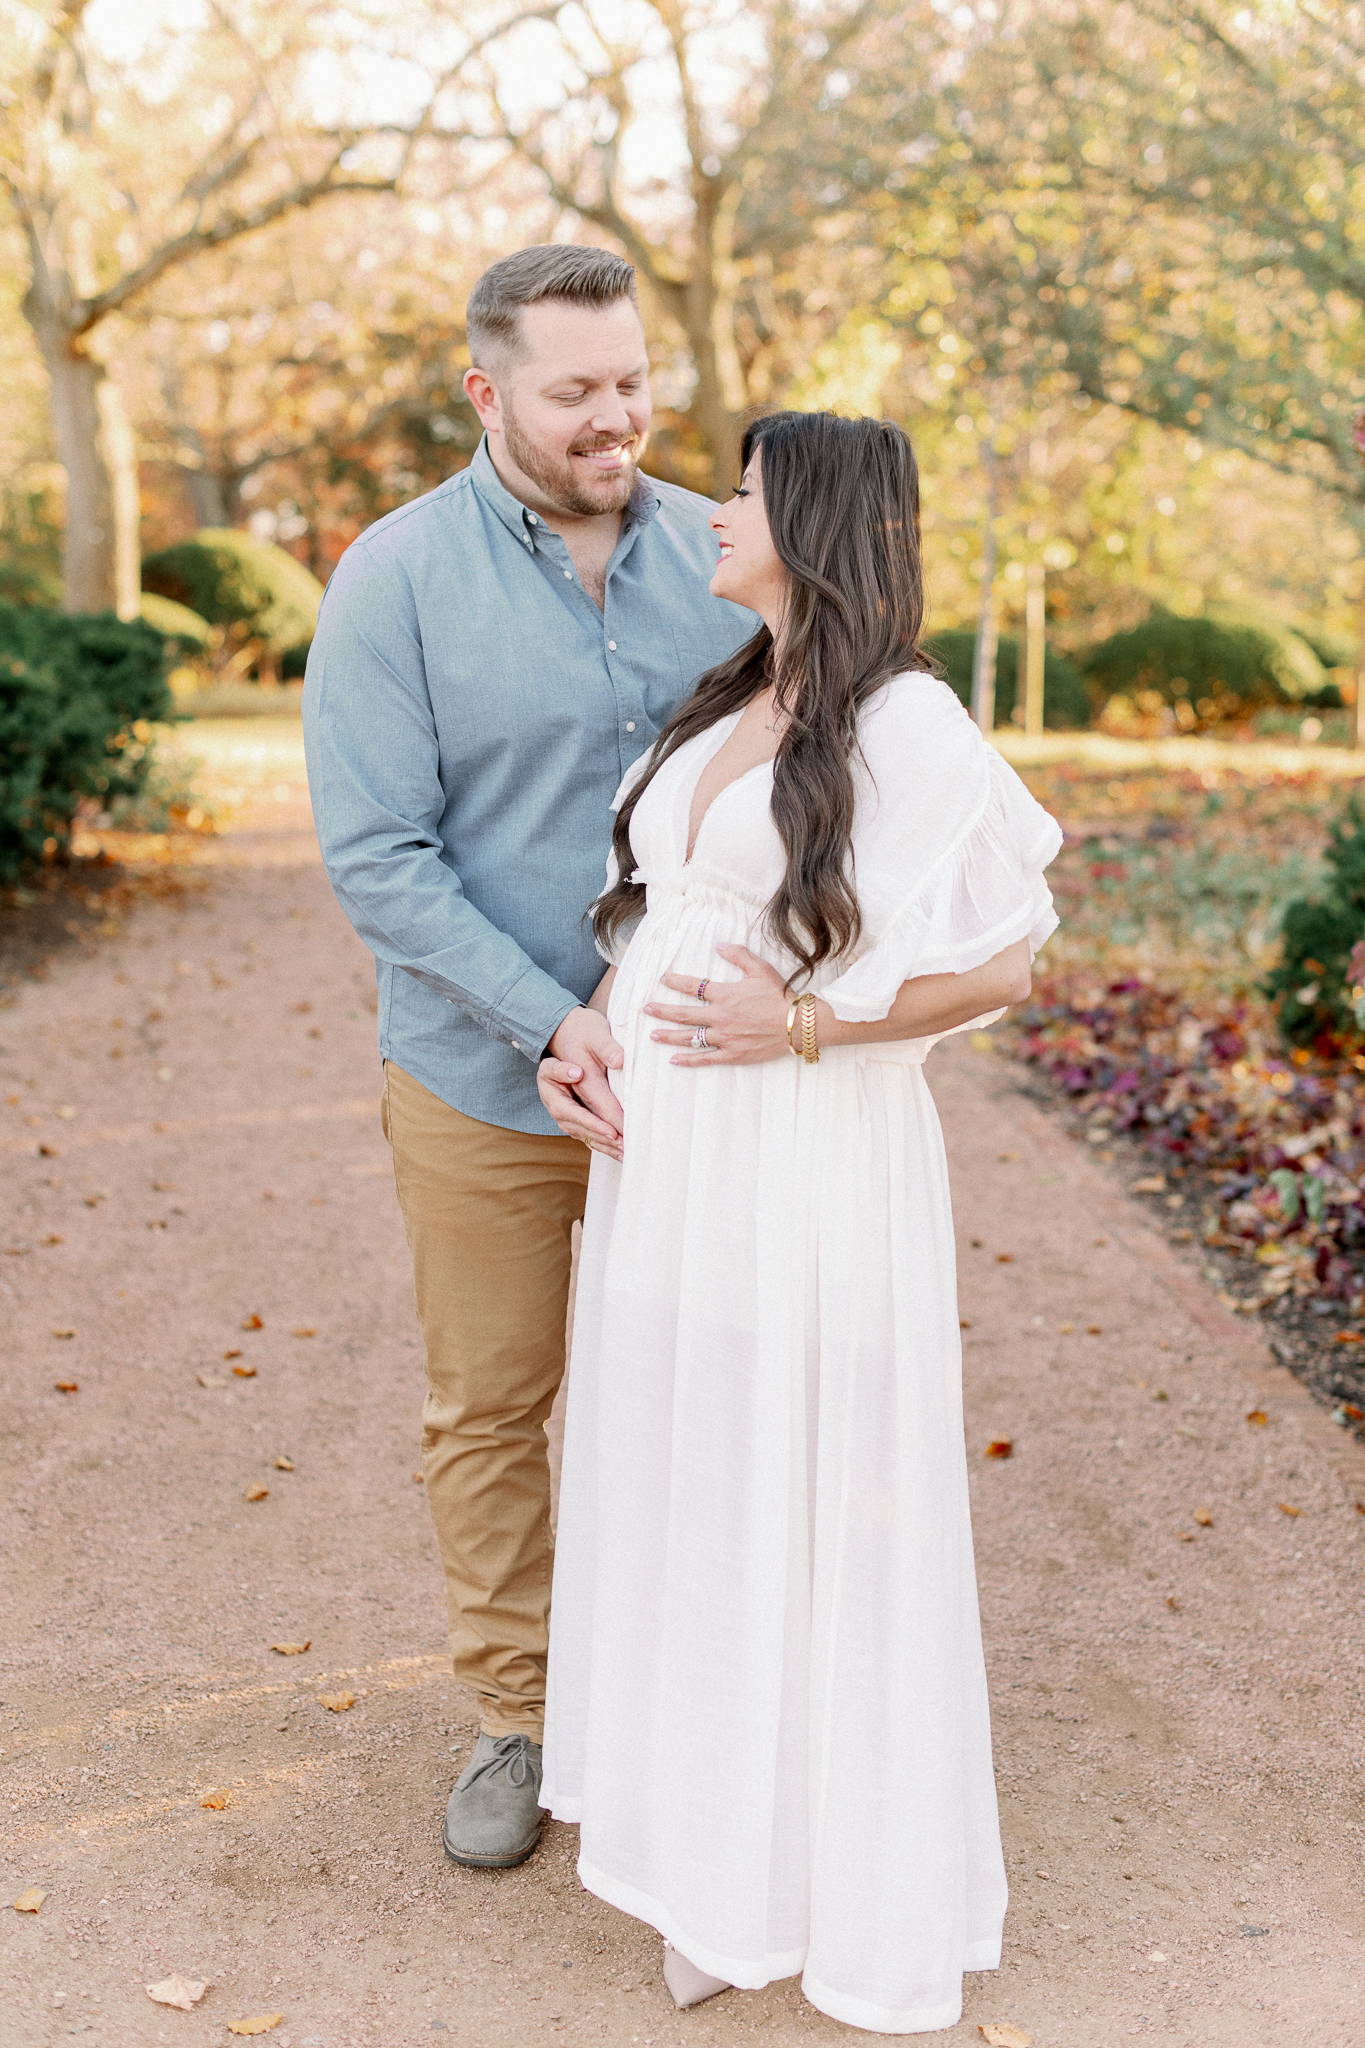 Chicago Southwest Florida Fine Art Maternity Family Photographer | Cantigny Maternity Photos -29